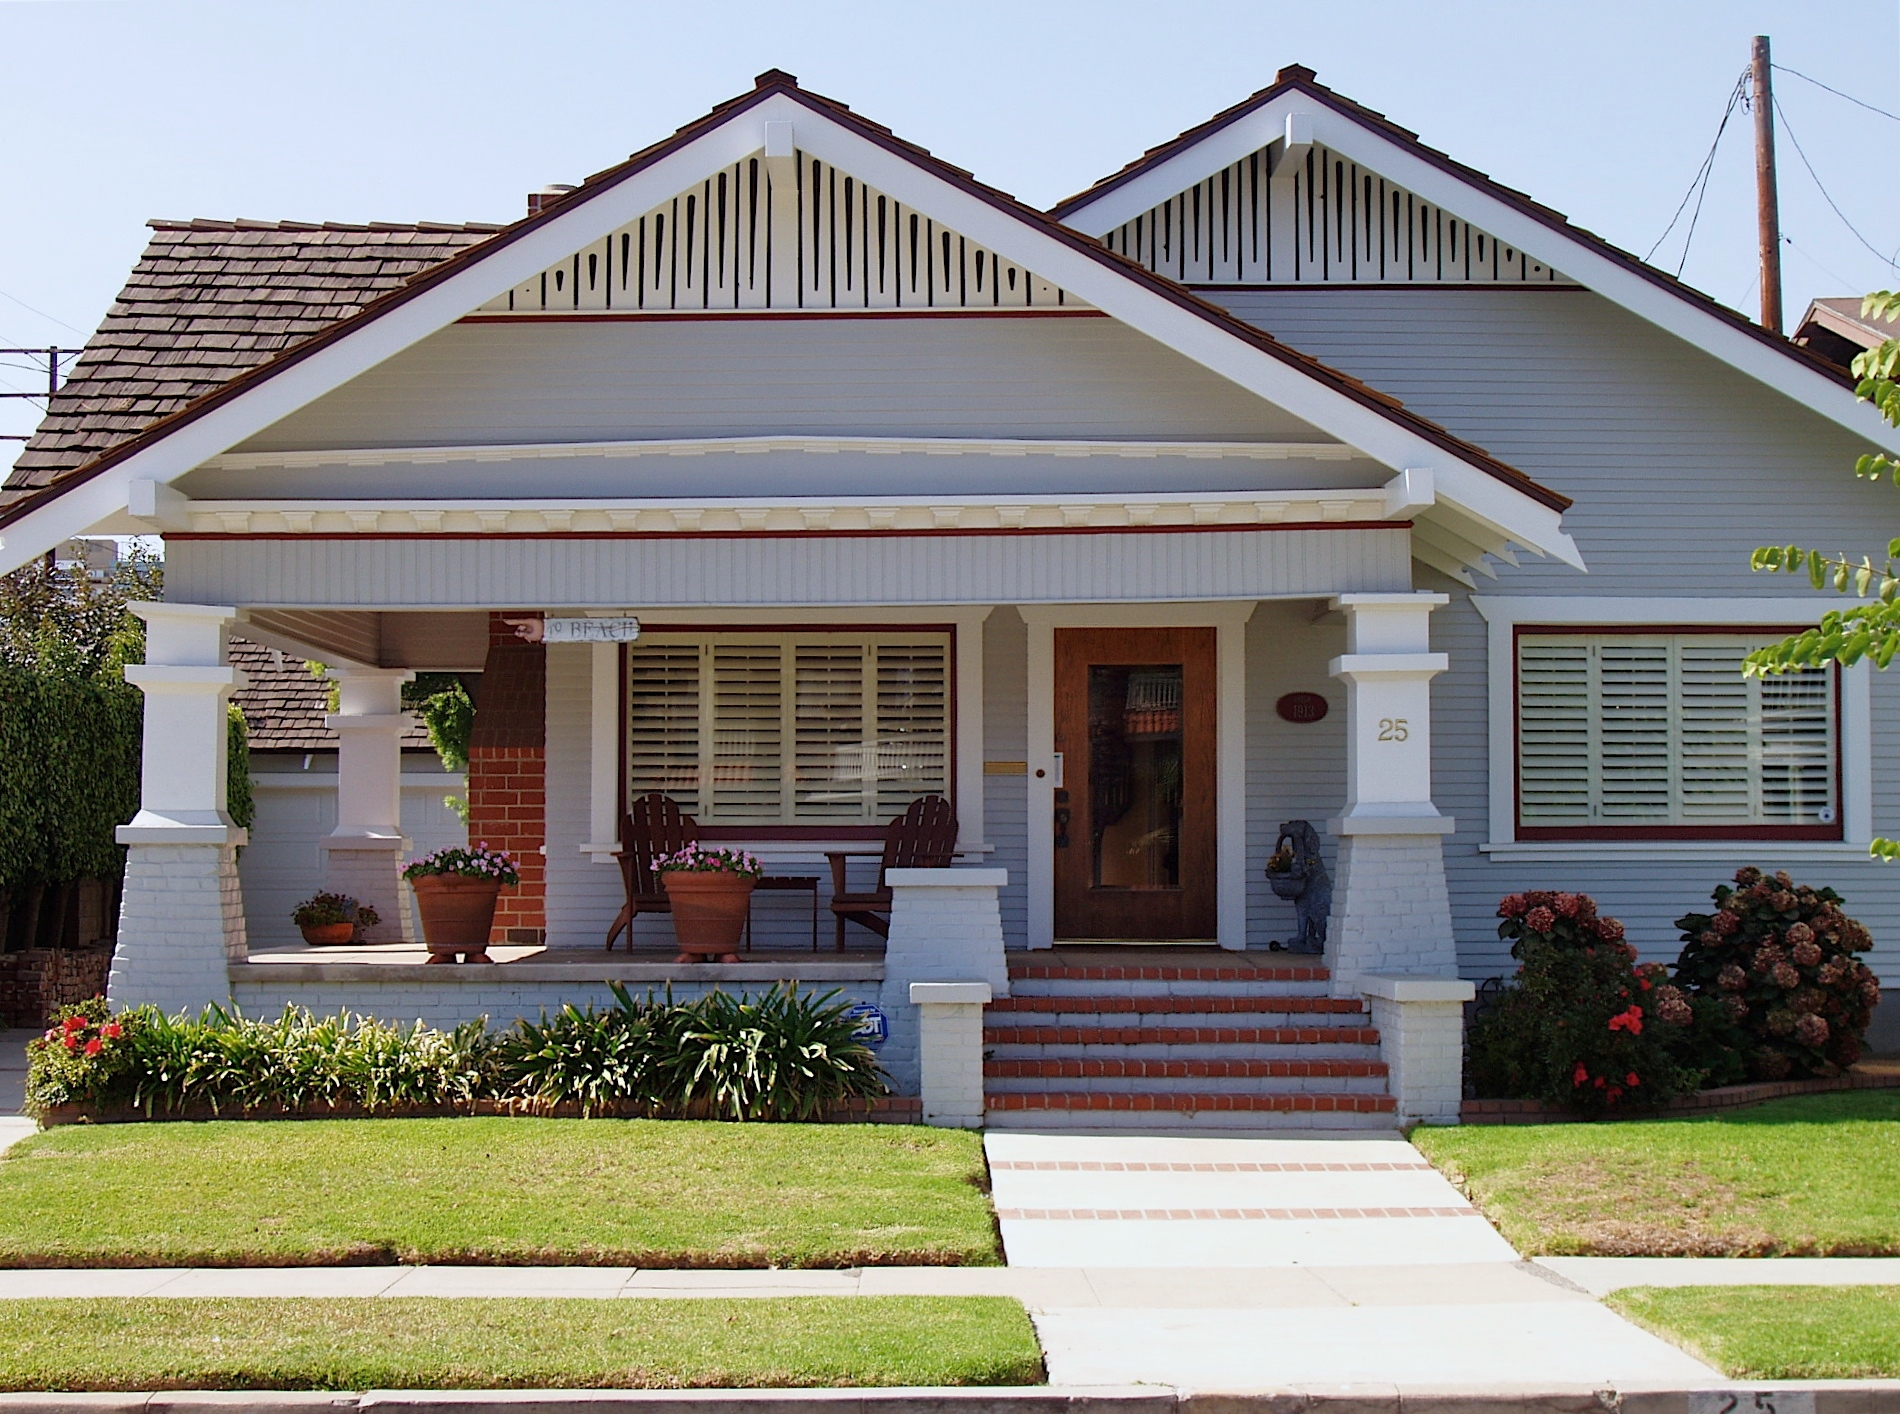 No Joanna Thats Not Shiplap together with Stair Flooring Ideas moreover Loft Open Floor Plan together with Kitchen Design Ideas in addition calbungalow. on craftsman house renovation